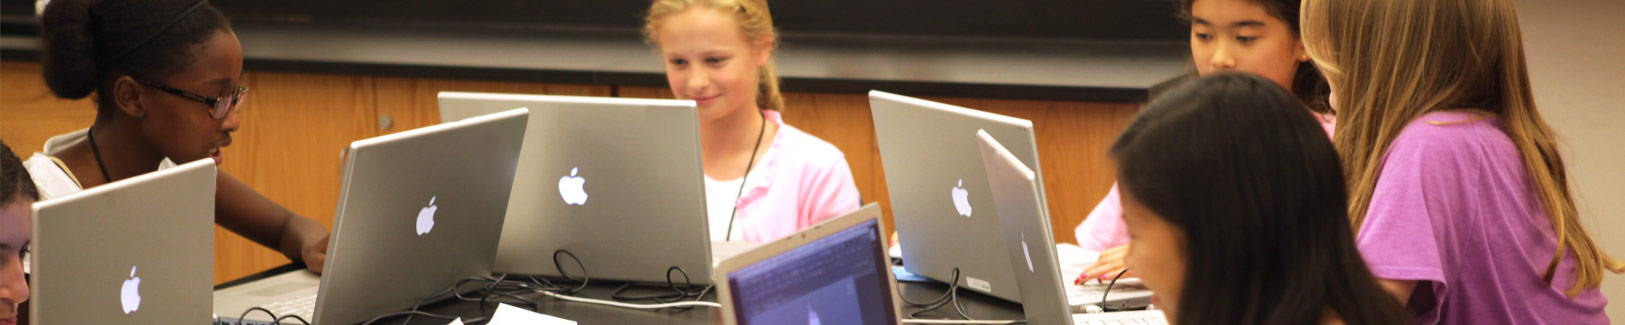 Kids' Animation Camps